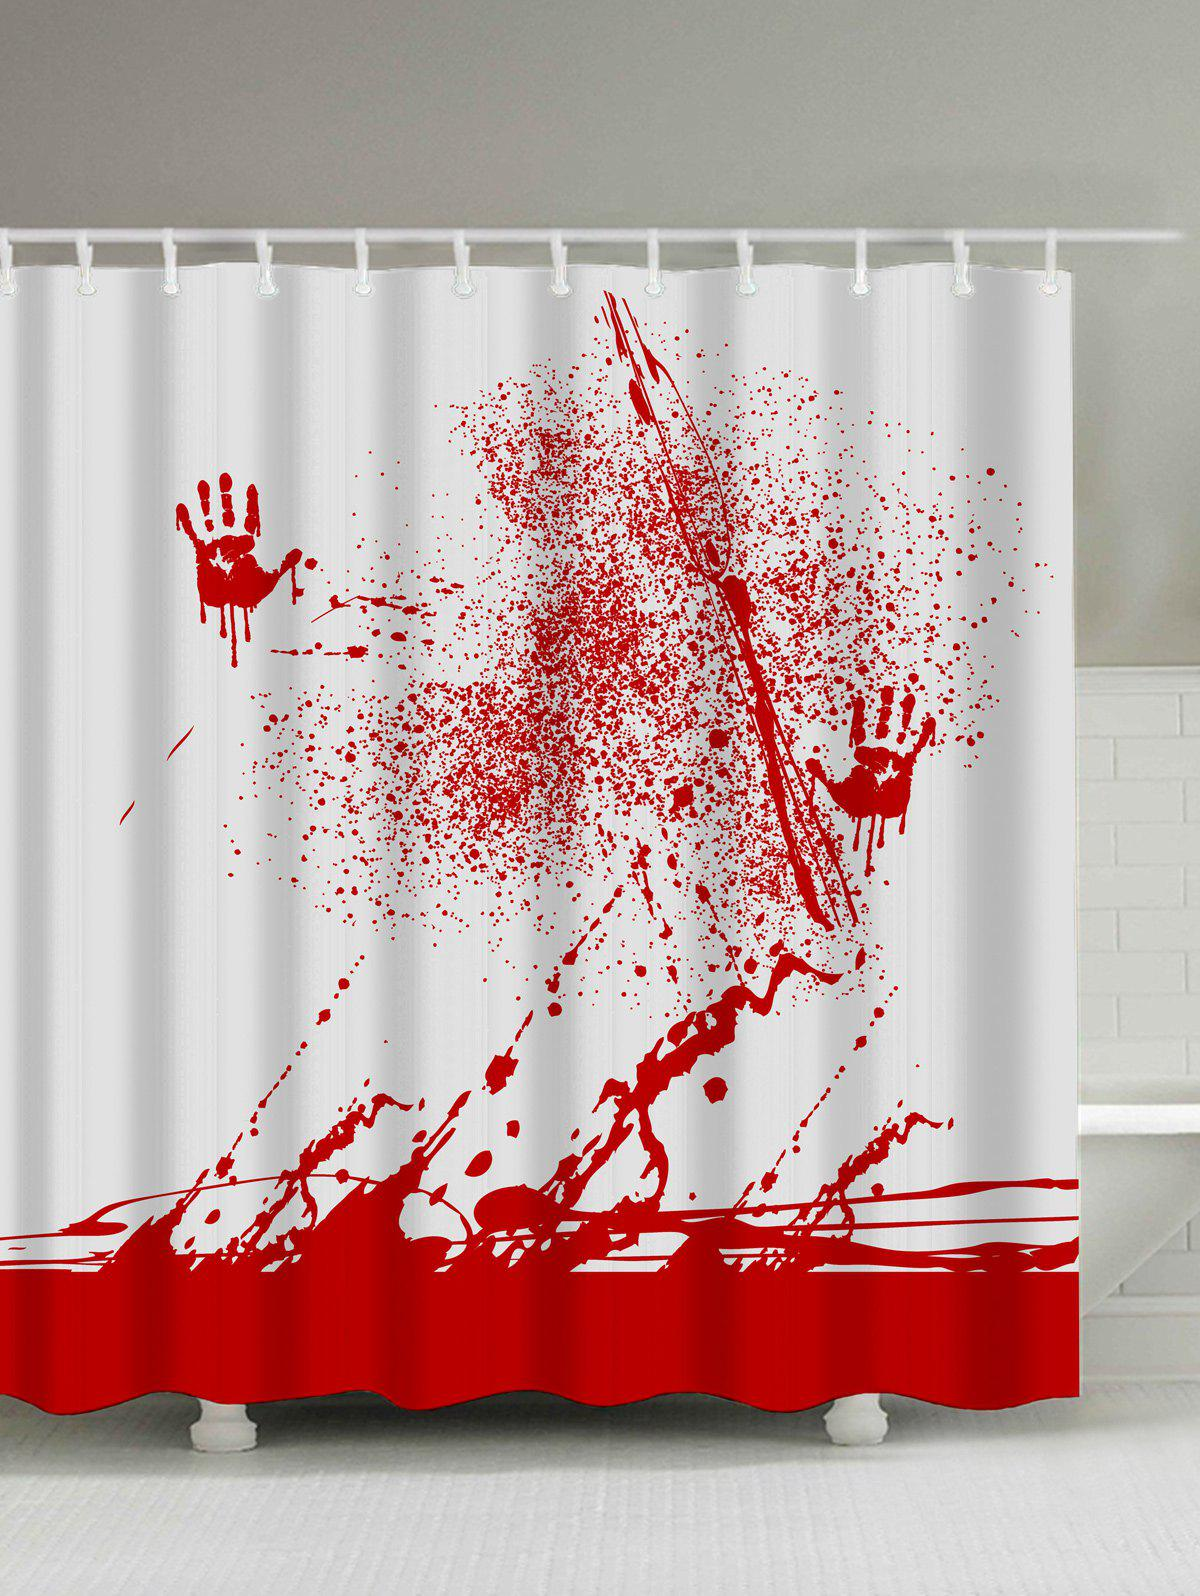 Blood Splatter Print Waterproof Bathroom Shower Curtain - RED/WHITE